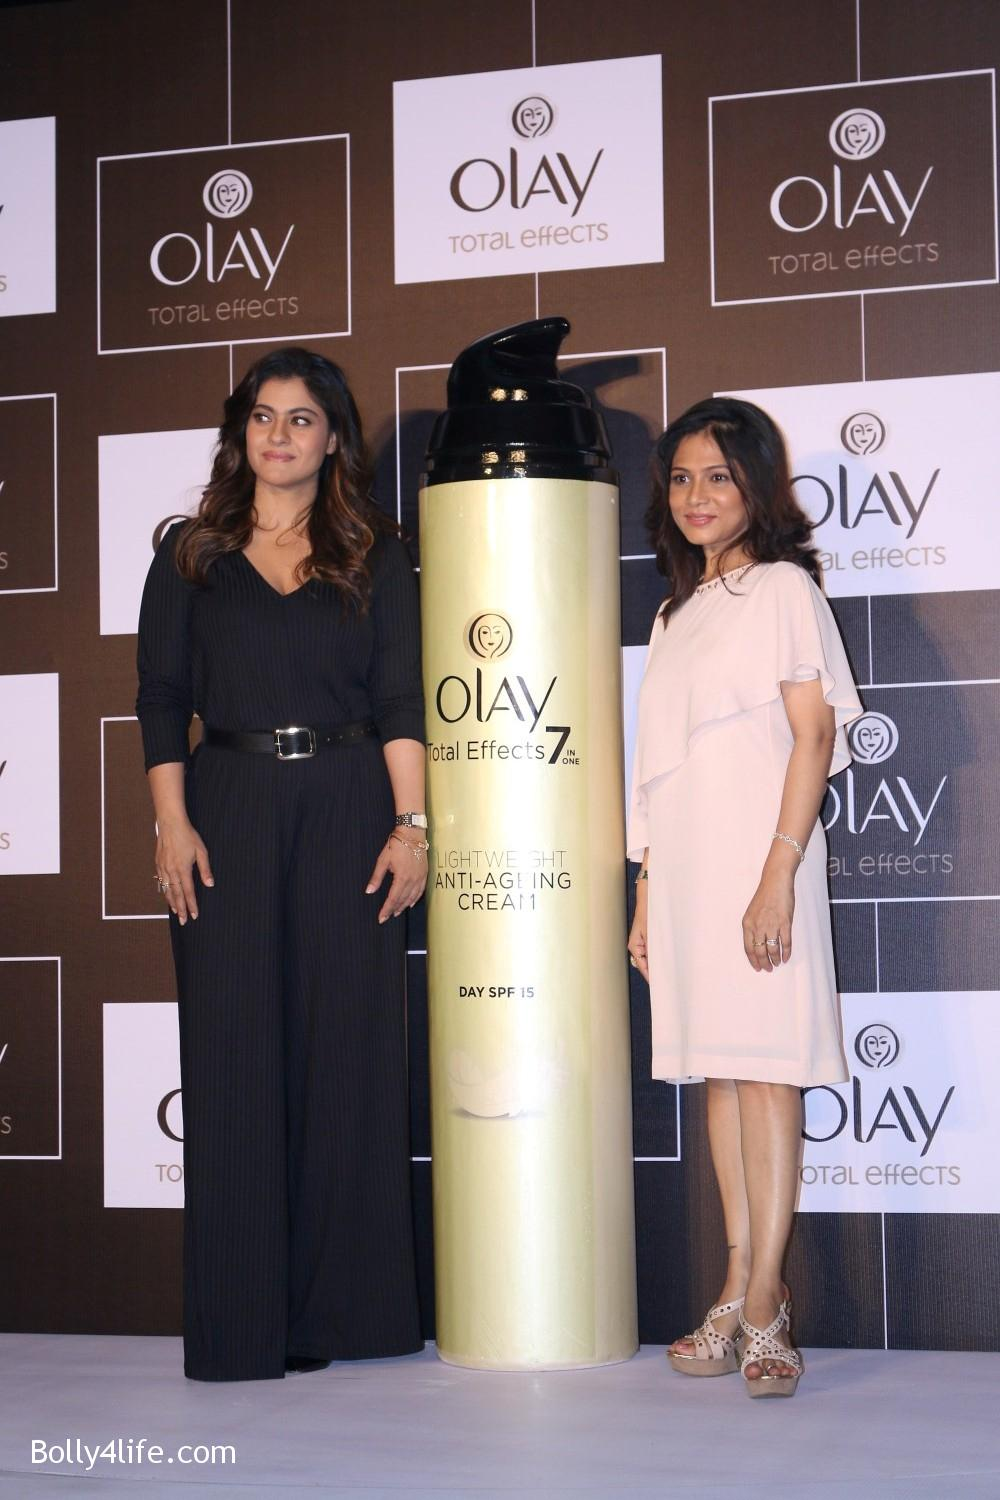 Kajol-Devgan-during-the-launch-of-Olay-Total-Effects-new-cream-1.jpg